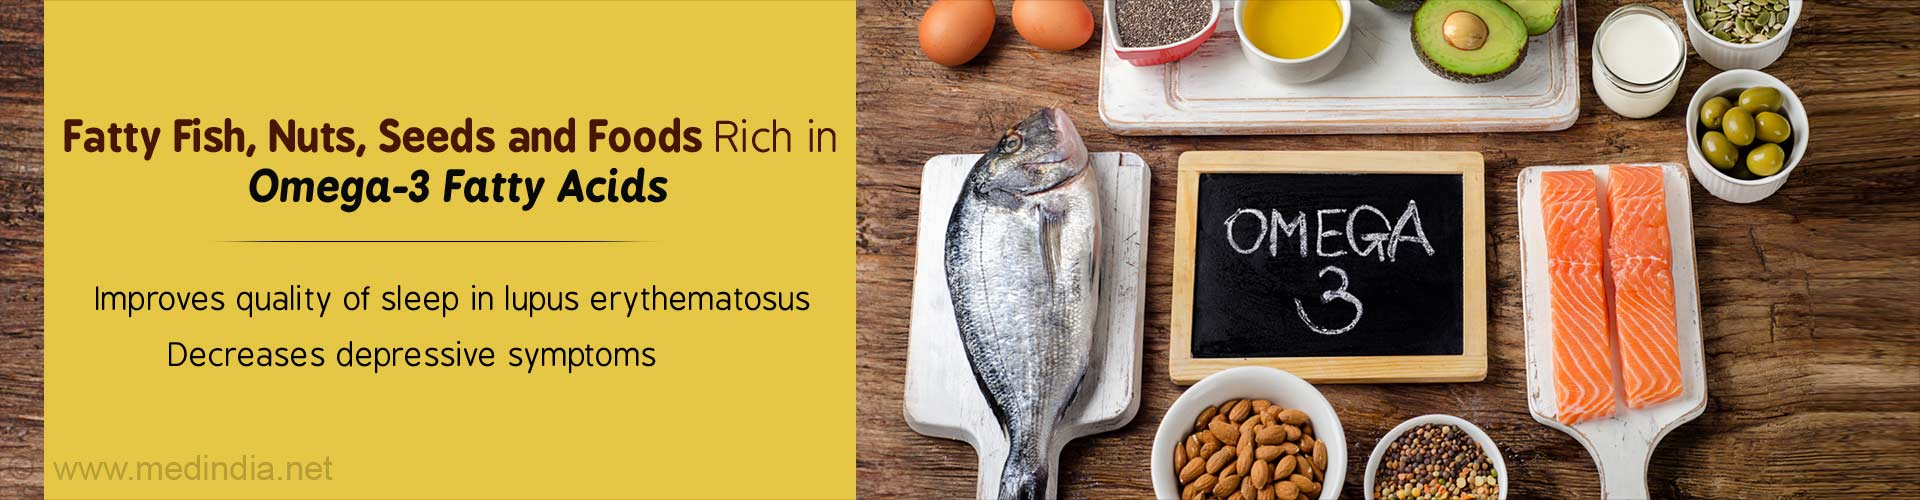 Omega-3 Rich Diet Reduces Disease Severity in Lupus